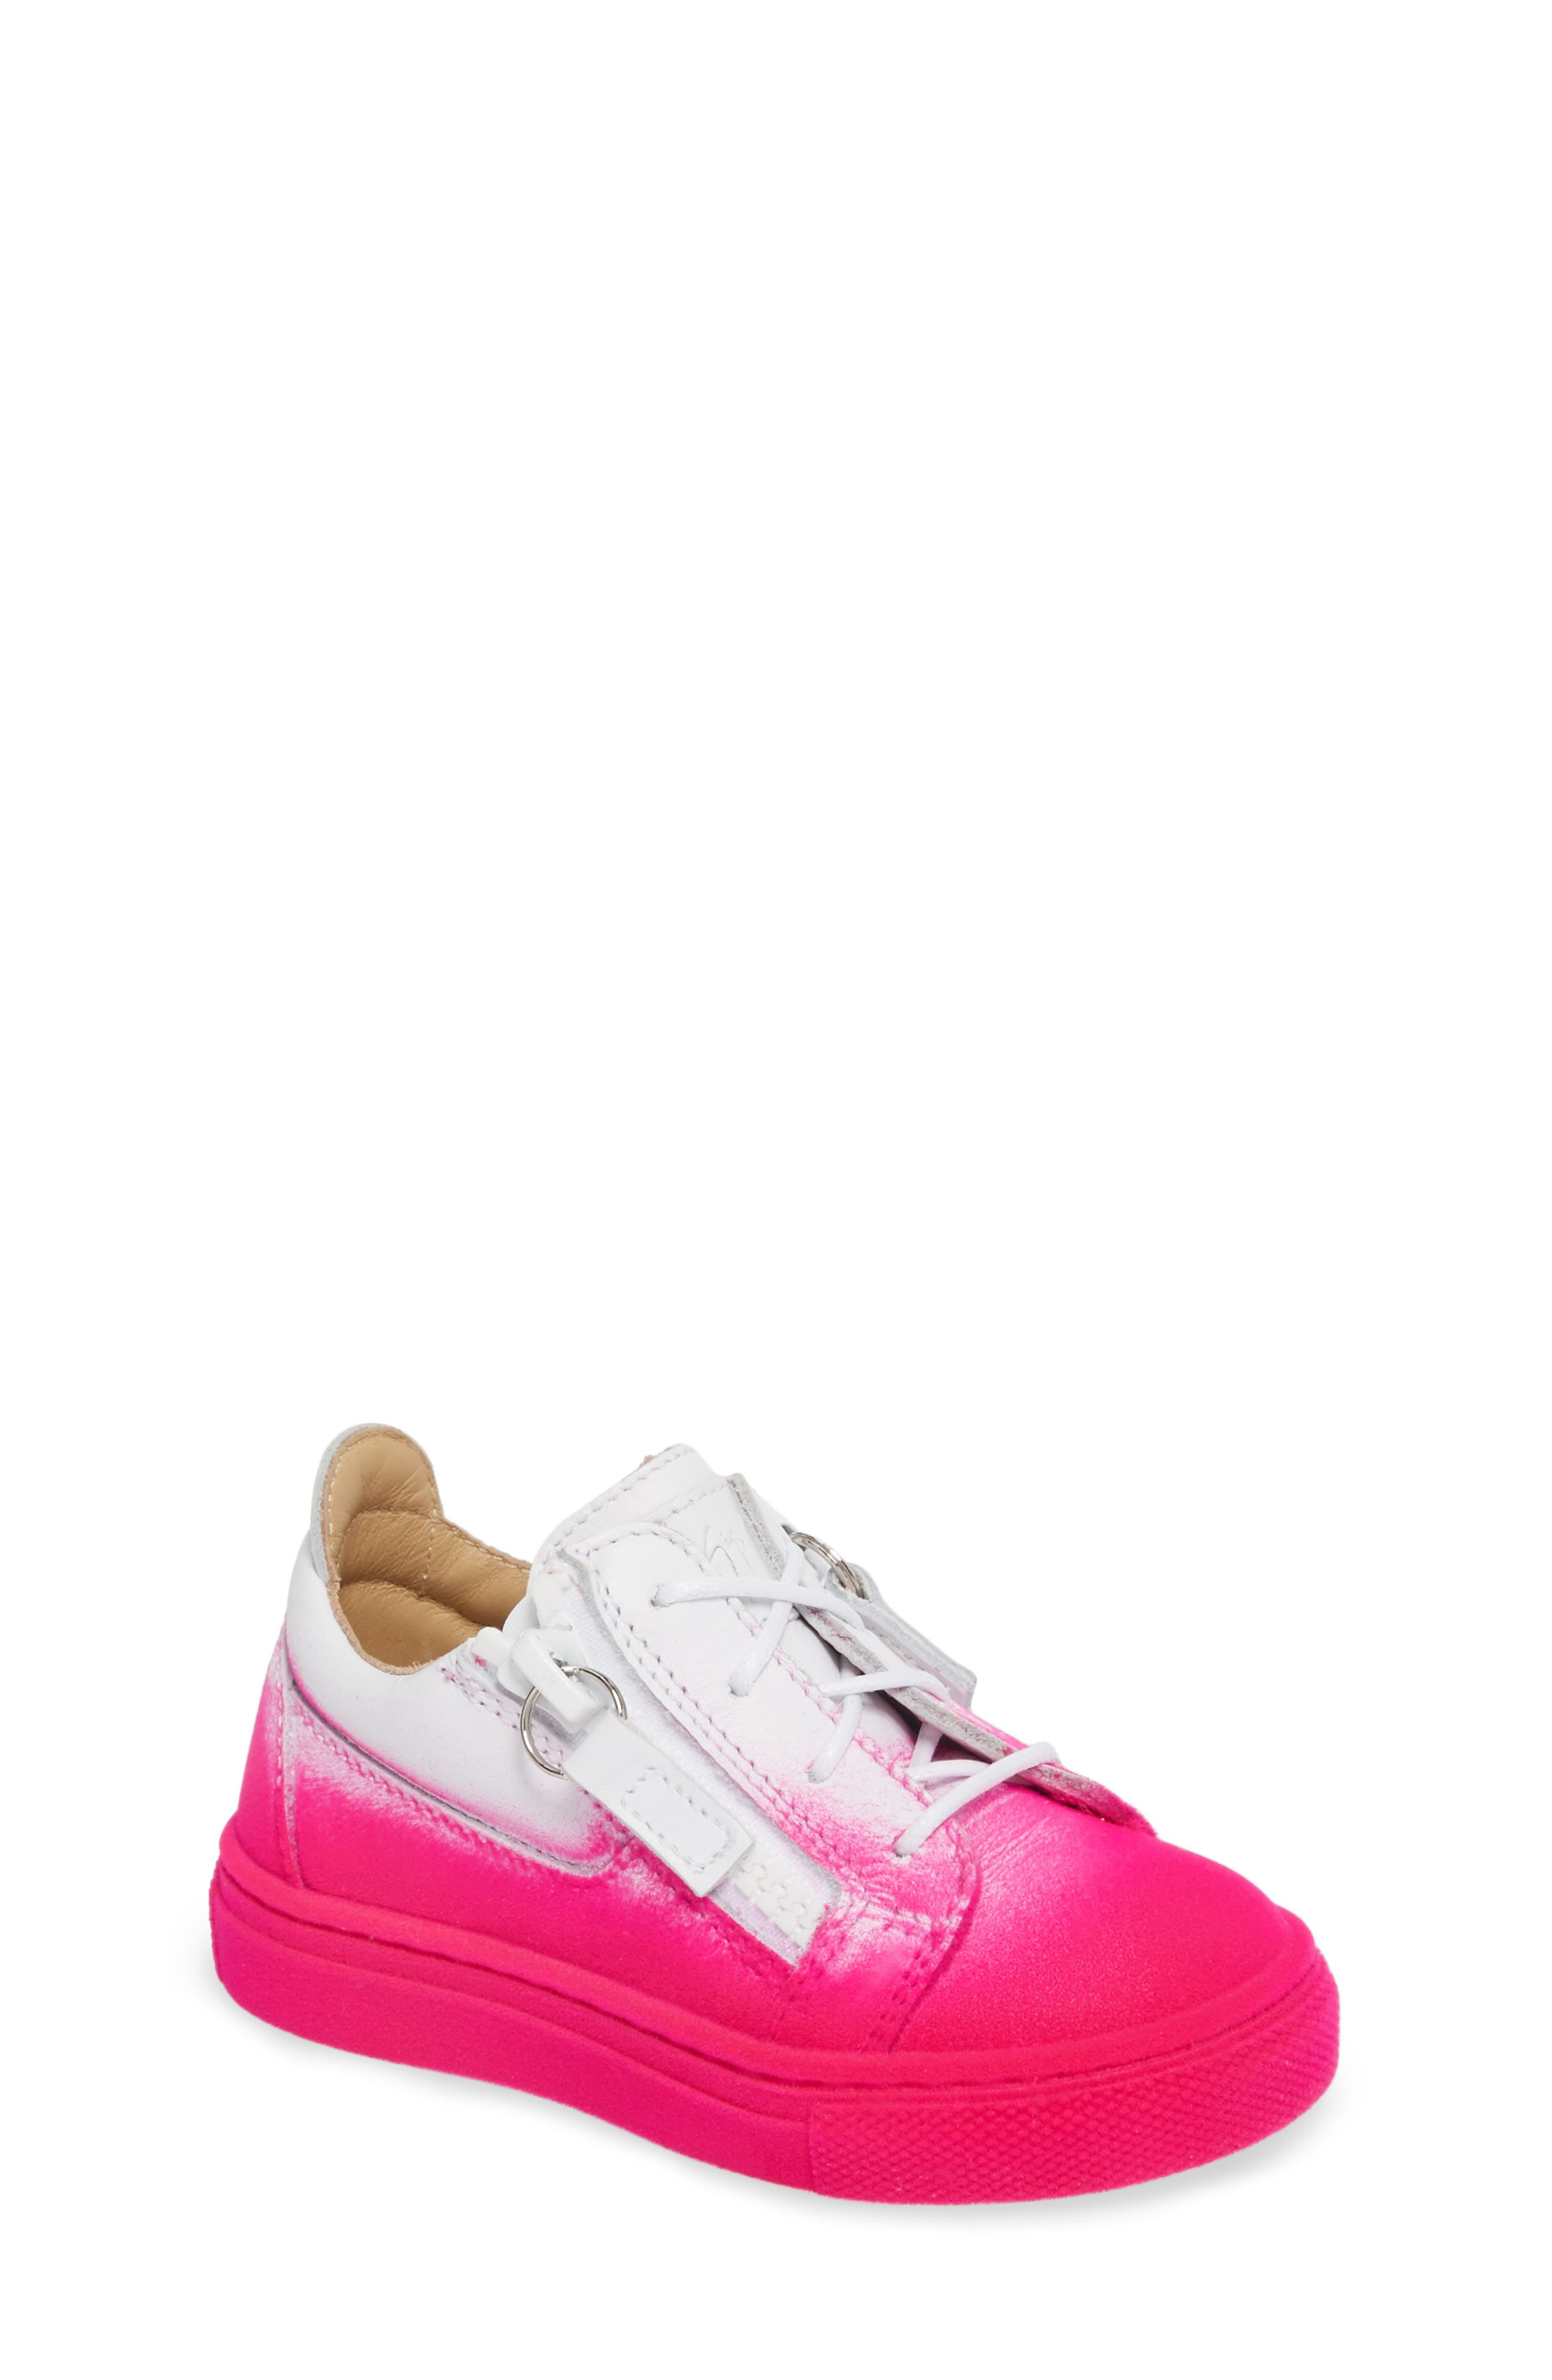 Main Image - Giuseppe Zanotti Smuggy Ombré Flocked Sneaker (Baby, Walker, Toddler & Little Kid)